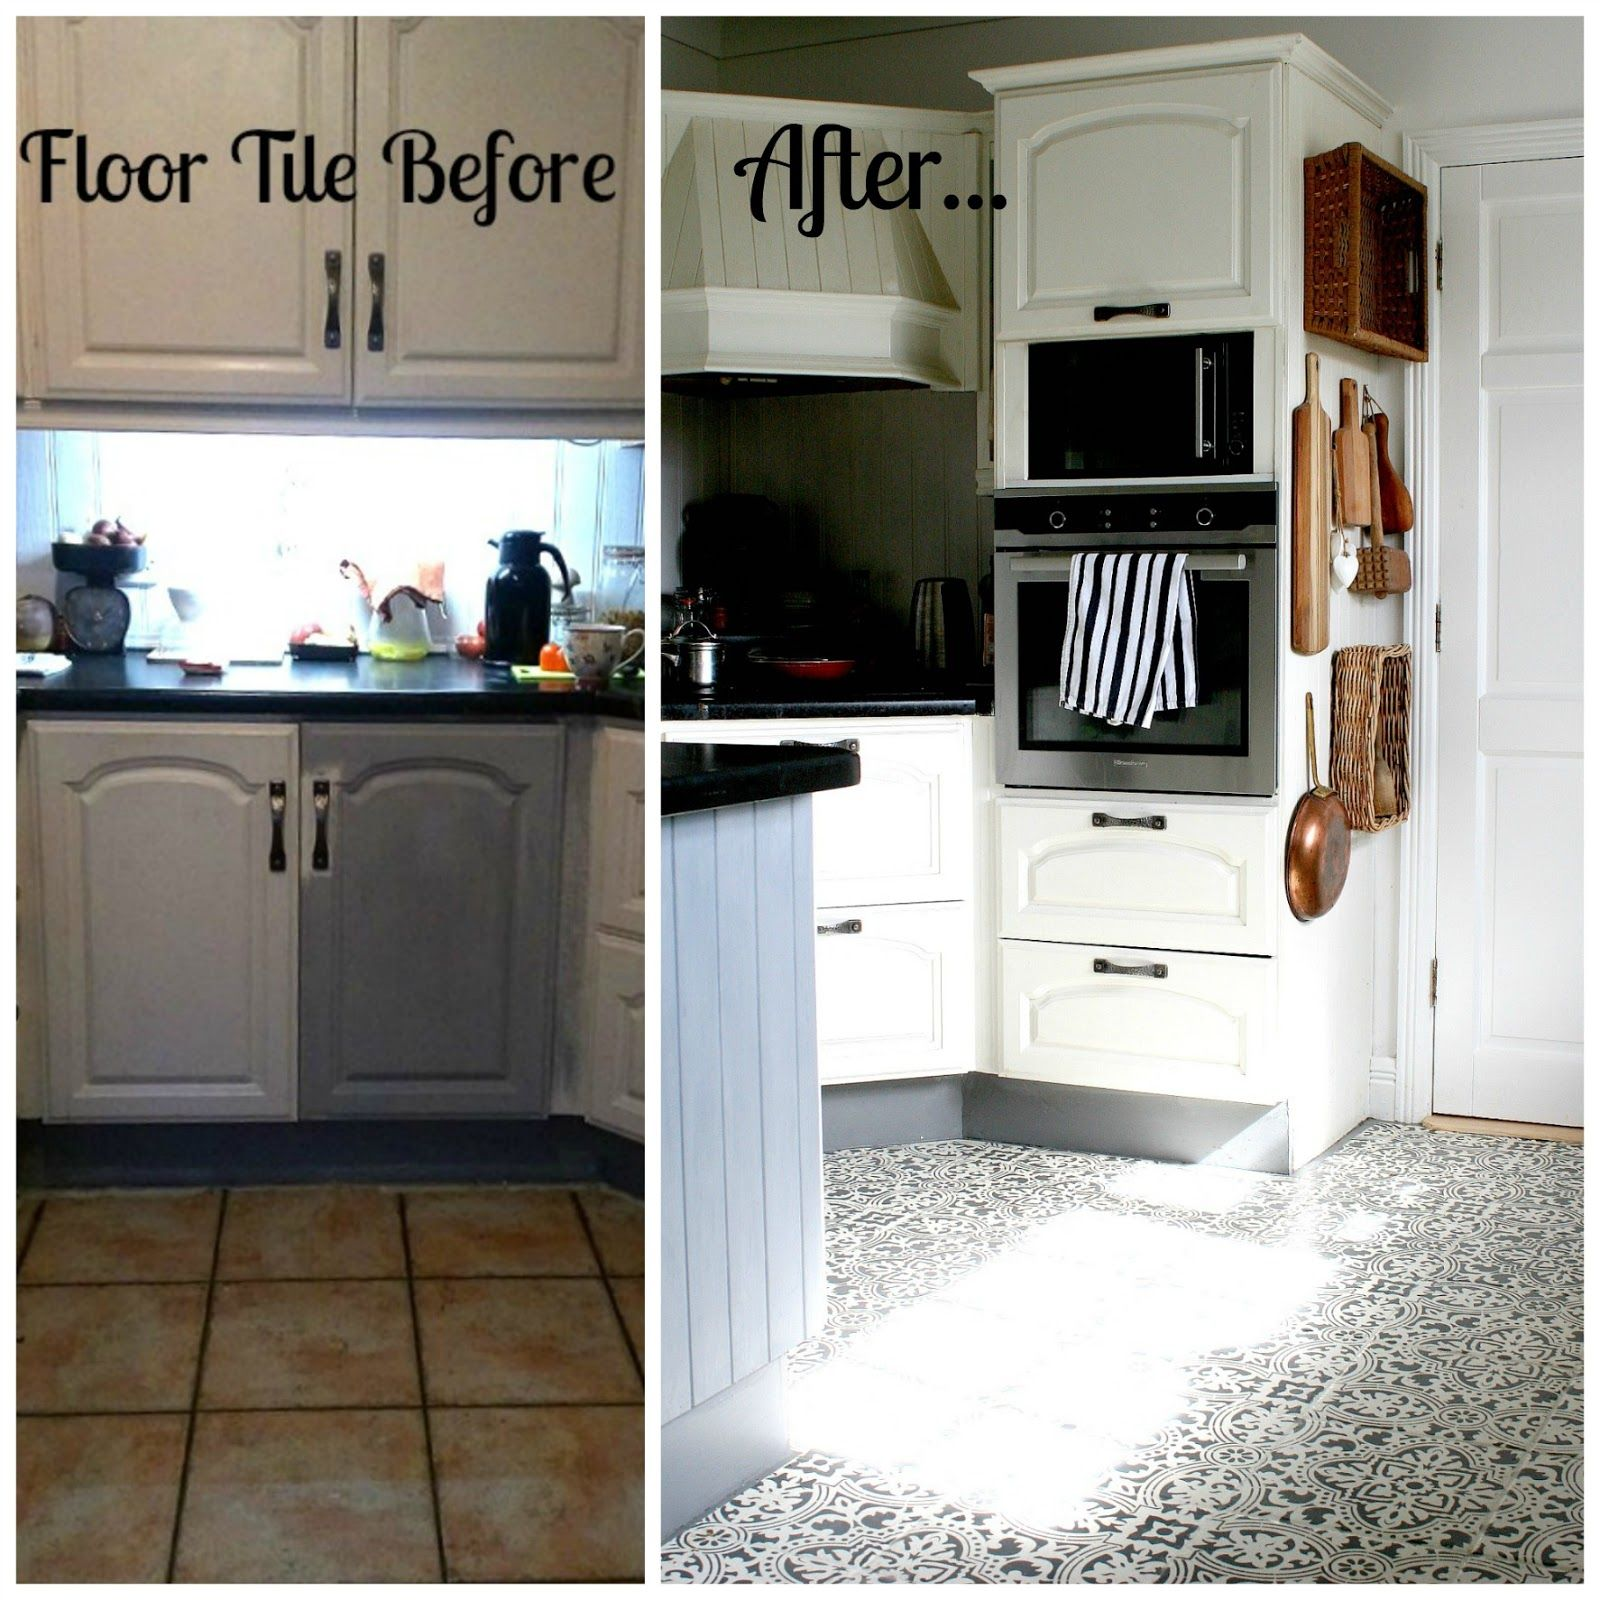 Paint It White Interiors How To Stencil Kitchen Floor Tile How It Held Up One Year Later Painted Kitchen Floors Kitchen Flooring Kitchen Floor Tile